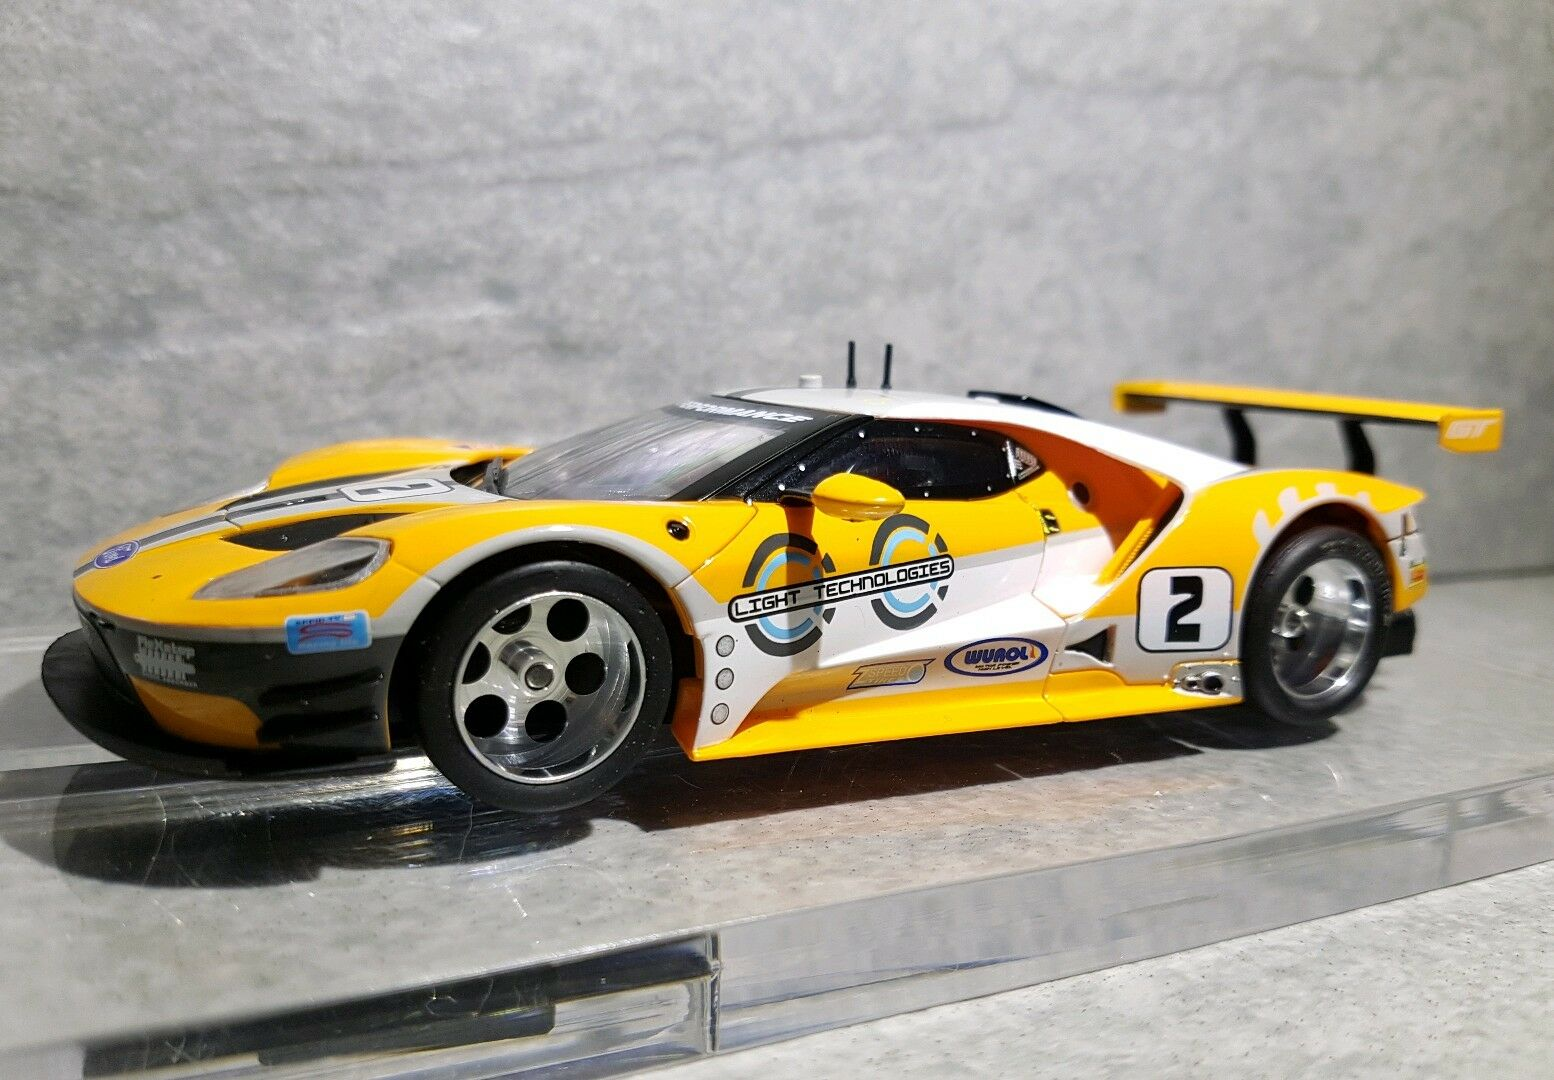 carrera evo umbau auf digital 132 ford gt super tuning. Black Bedroom Furniture Sets. Home Design Ideas